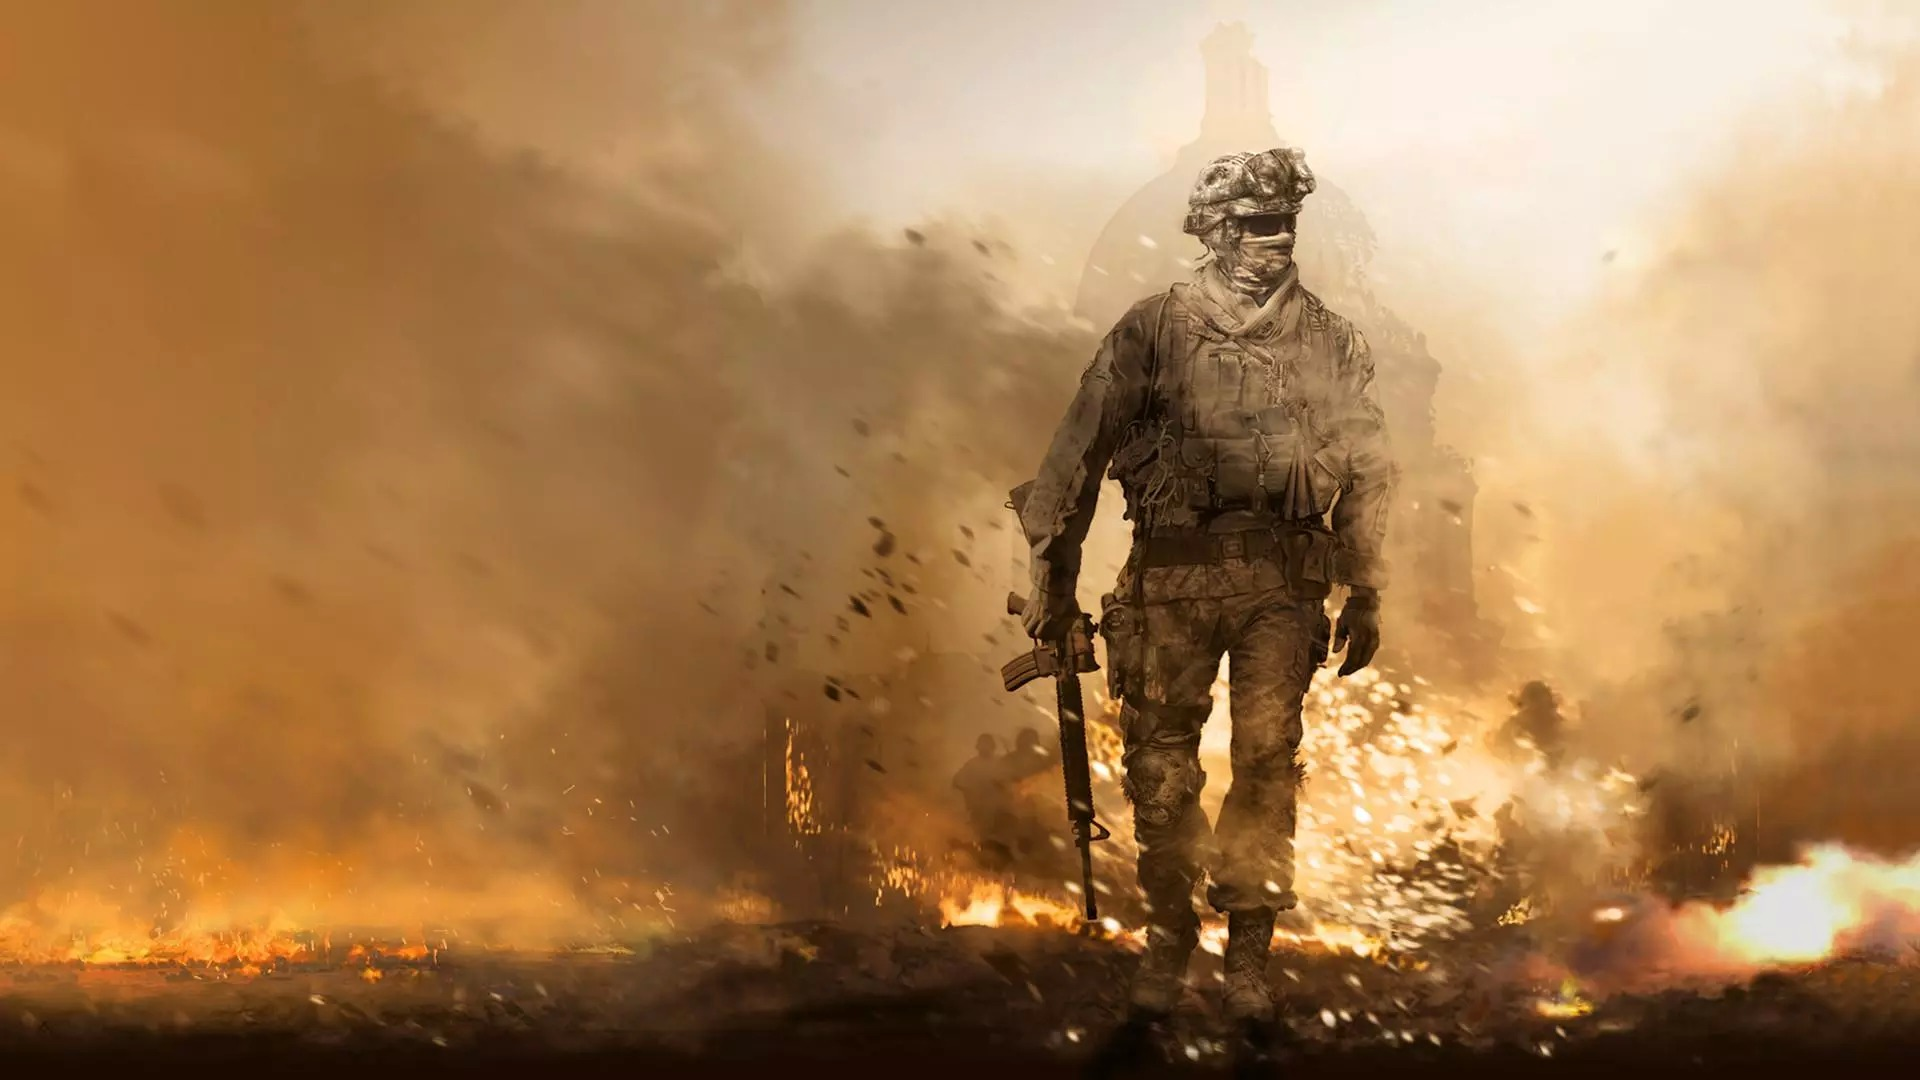 Call of Duty: Modern Warfare Out in October, Captain Price Returning